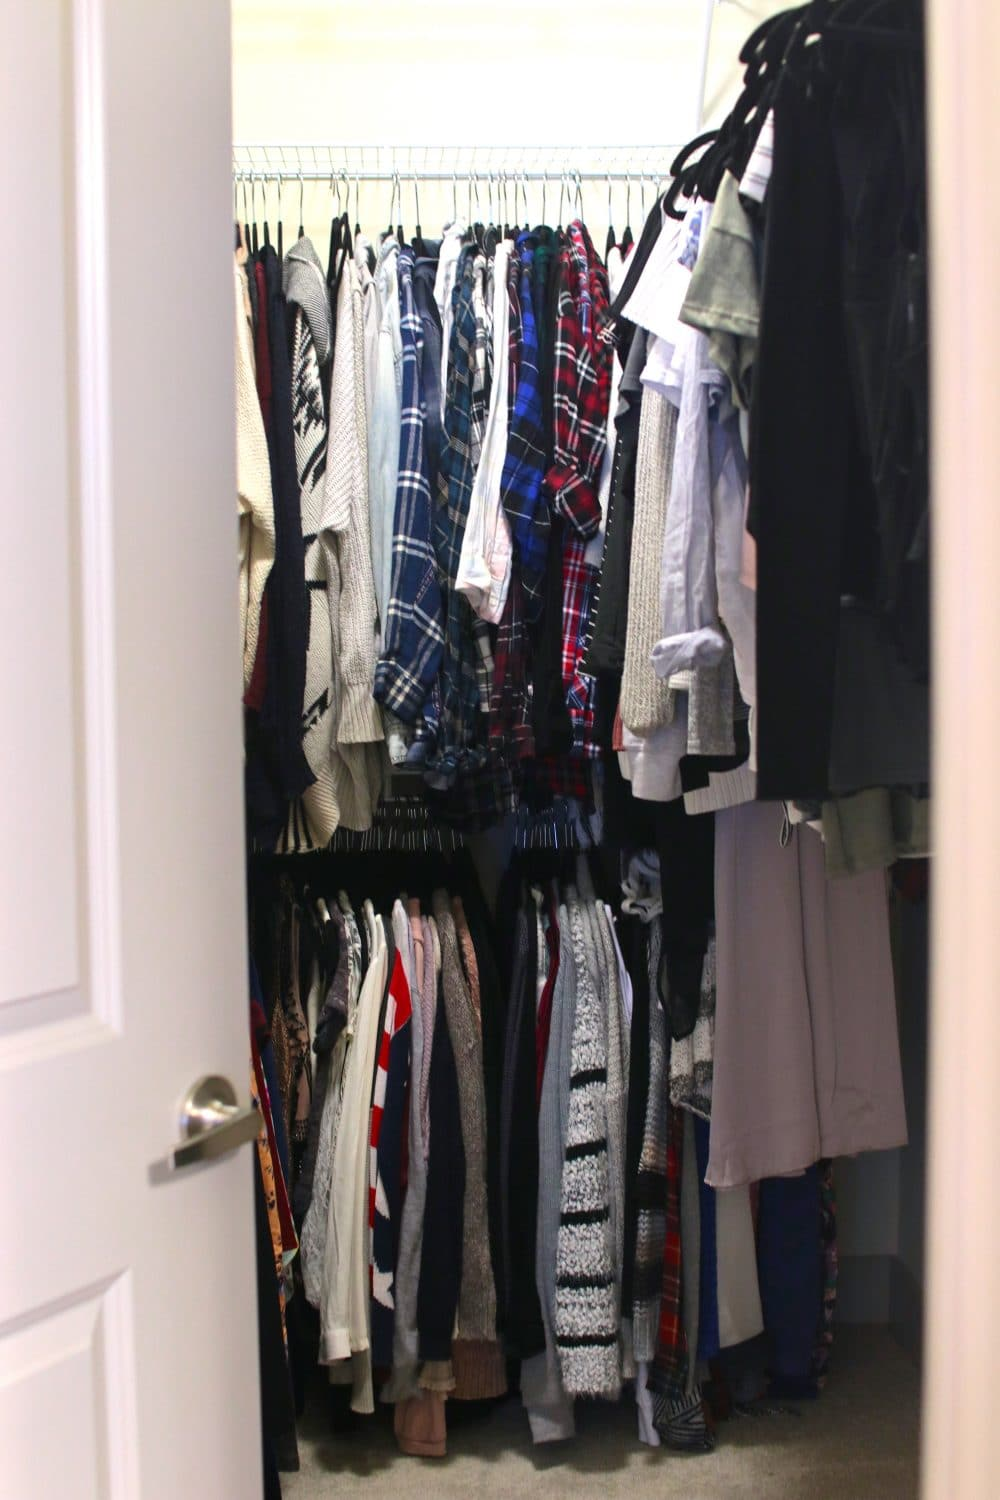 Lastly, we have my closet… a closet I neverrrrr thought I'd have, it's HUGE! - I think it's every girls dream to have that nice big walk in closet where they can see all of their clothes everywhere they look. At least I know it was for me! Although, in my dreams it's usually perfectly clean with everything color coordinated and looking perfect… unfortunately that's just not who I am hahah. Sometimes I'll just get super fed up with not even being able to see the floor so I end up spending hours trying to clean it and make it look perfect, but within a couple weeks it's normally back to it's messy state. As you can see, I did clean before taking these photos so it looks pretty awesome! The top row straight ahead is where I keep my flannels, cardigans, and almost anything I could use to layer on top of my outfit. The row below it is for my big comfy sweaters, with some fancier shirts tucked to the side. Then the top rack on the right is where I have all of my tops, long sleeves, short sleeves, crop tops, tank tops… you get it. Whether it's messy or not, I still love my closet and I'm so grateful to have the walk in I've always dreamed of!